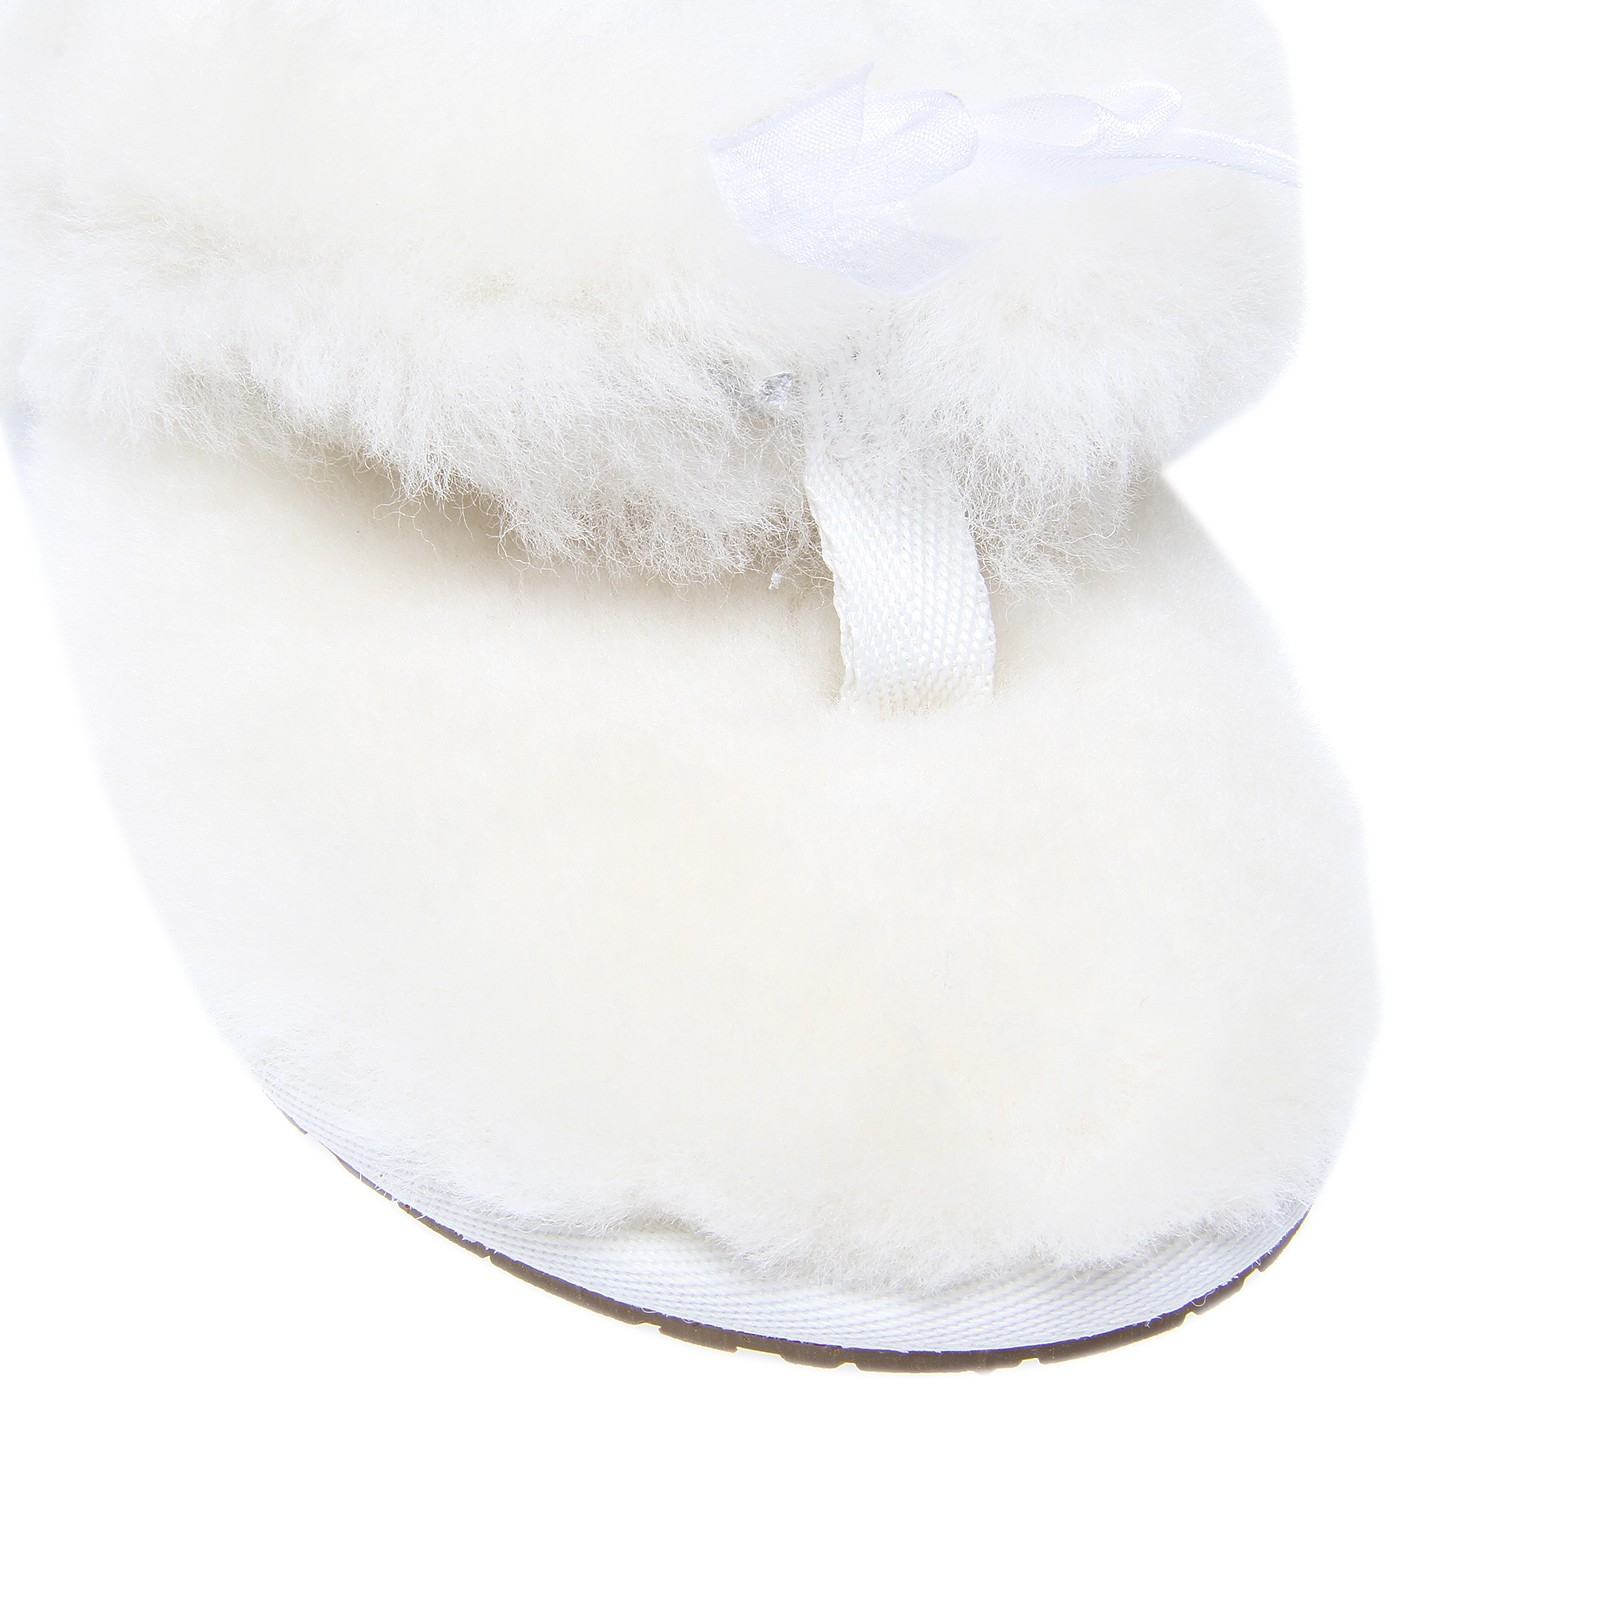 76aaae87ae37 Ugg Fluff Flip Flop Slippers White - cheap watches mgc-gas.com